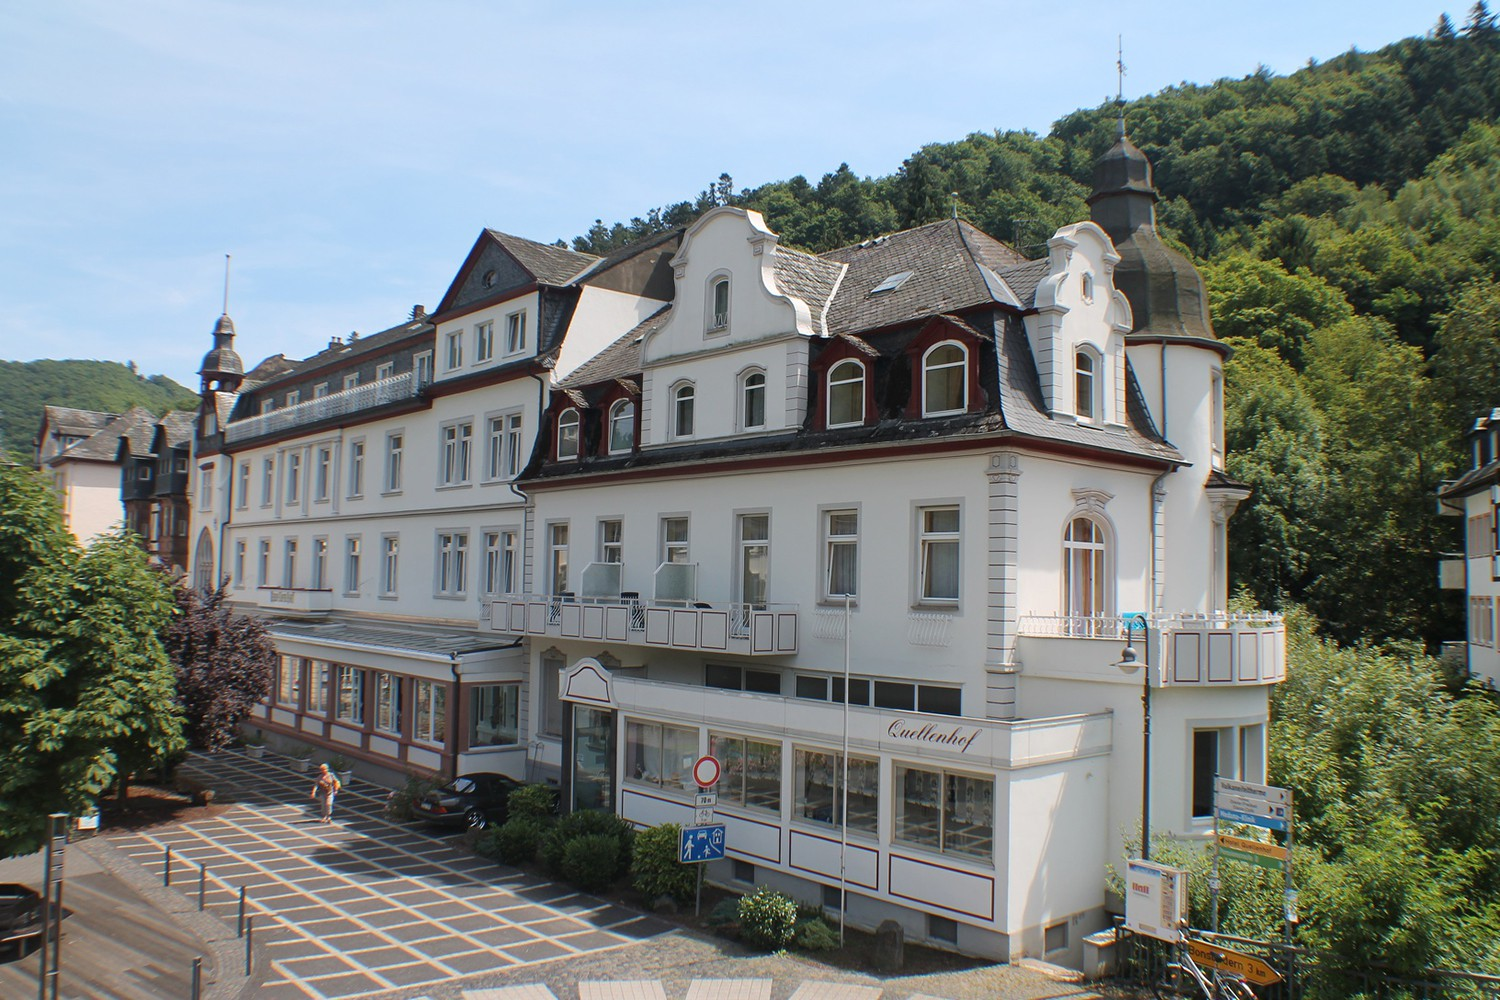 4 Tage Wellness an der Mosel im Kurhotel Quellenhof in Bad Bertrich